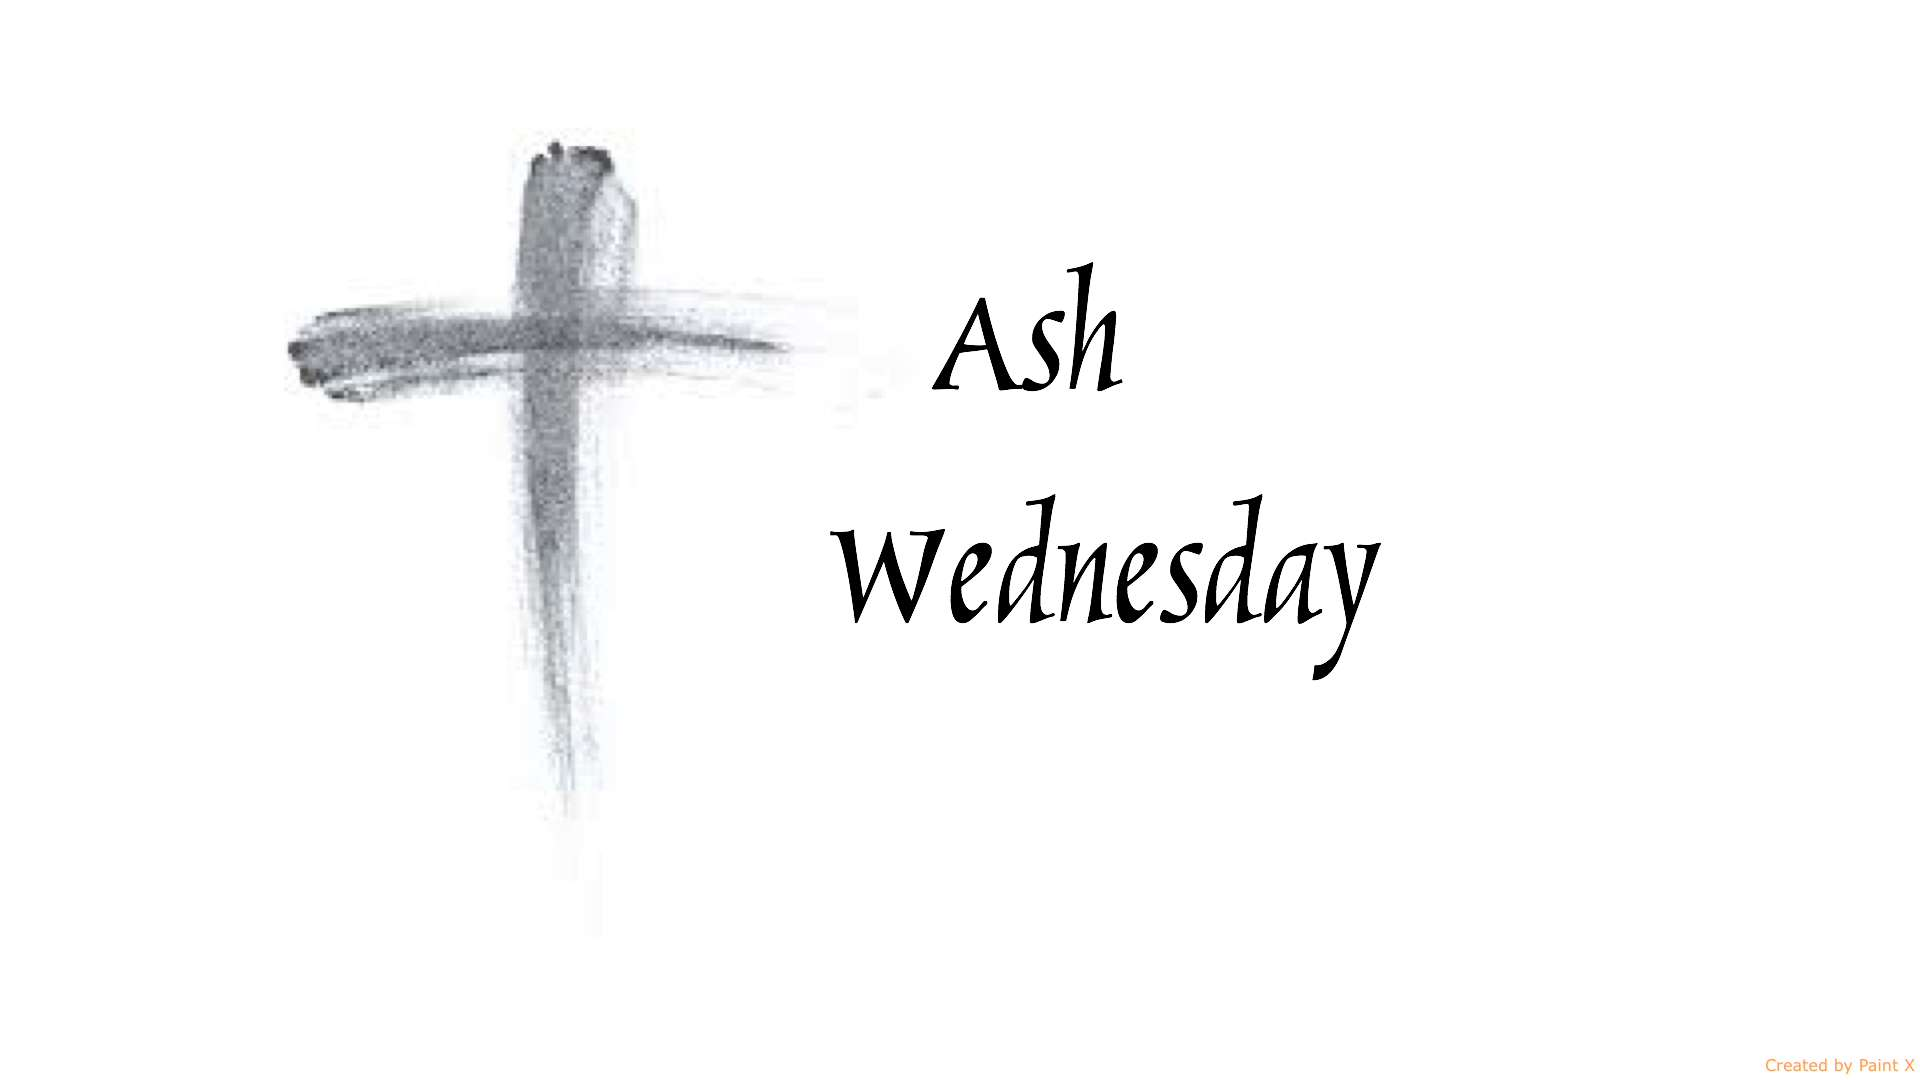 Ash Wednesday Wishes Awesome Images, Pictures, Photos, Wallpapers